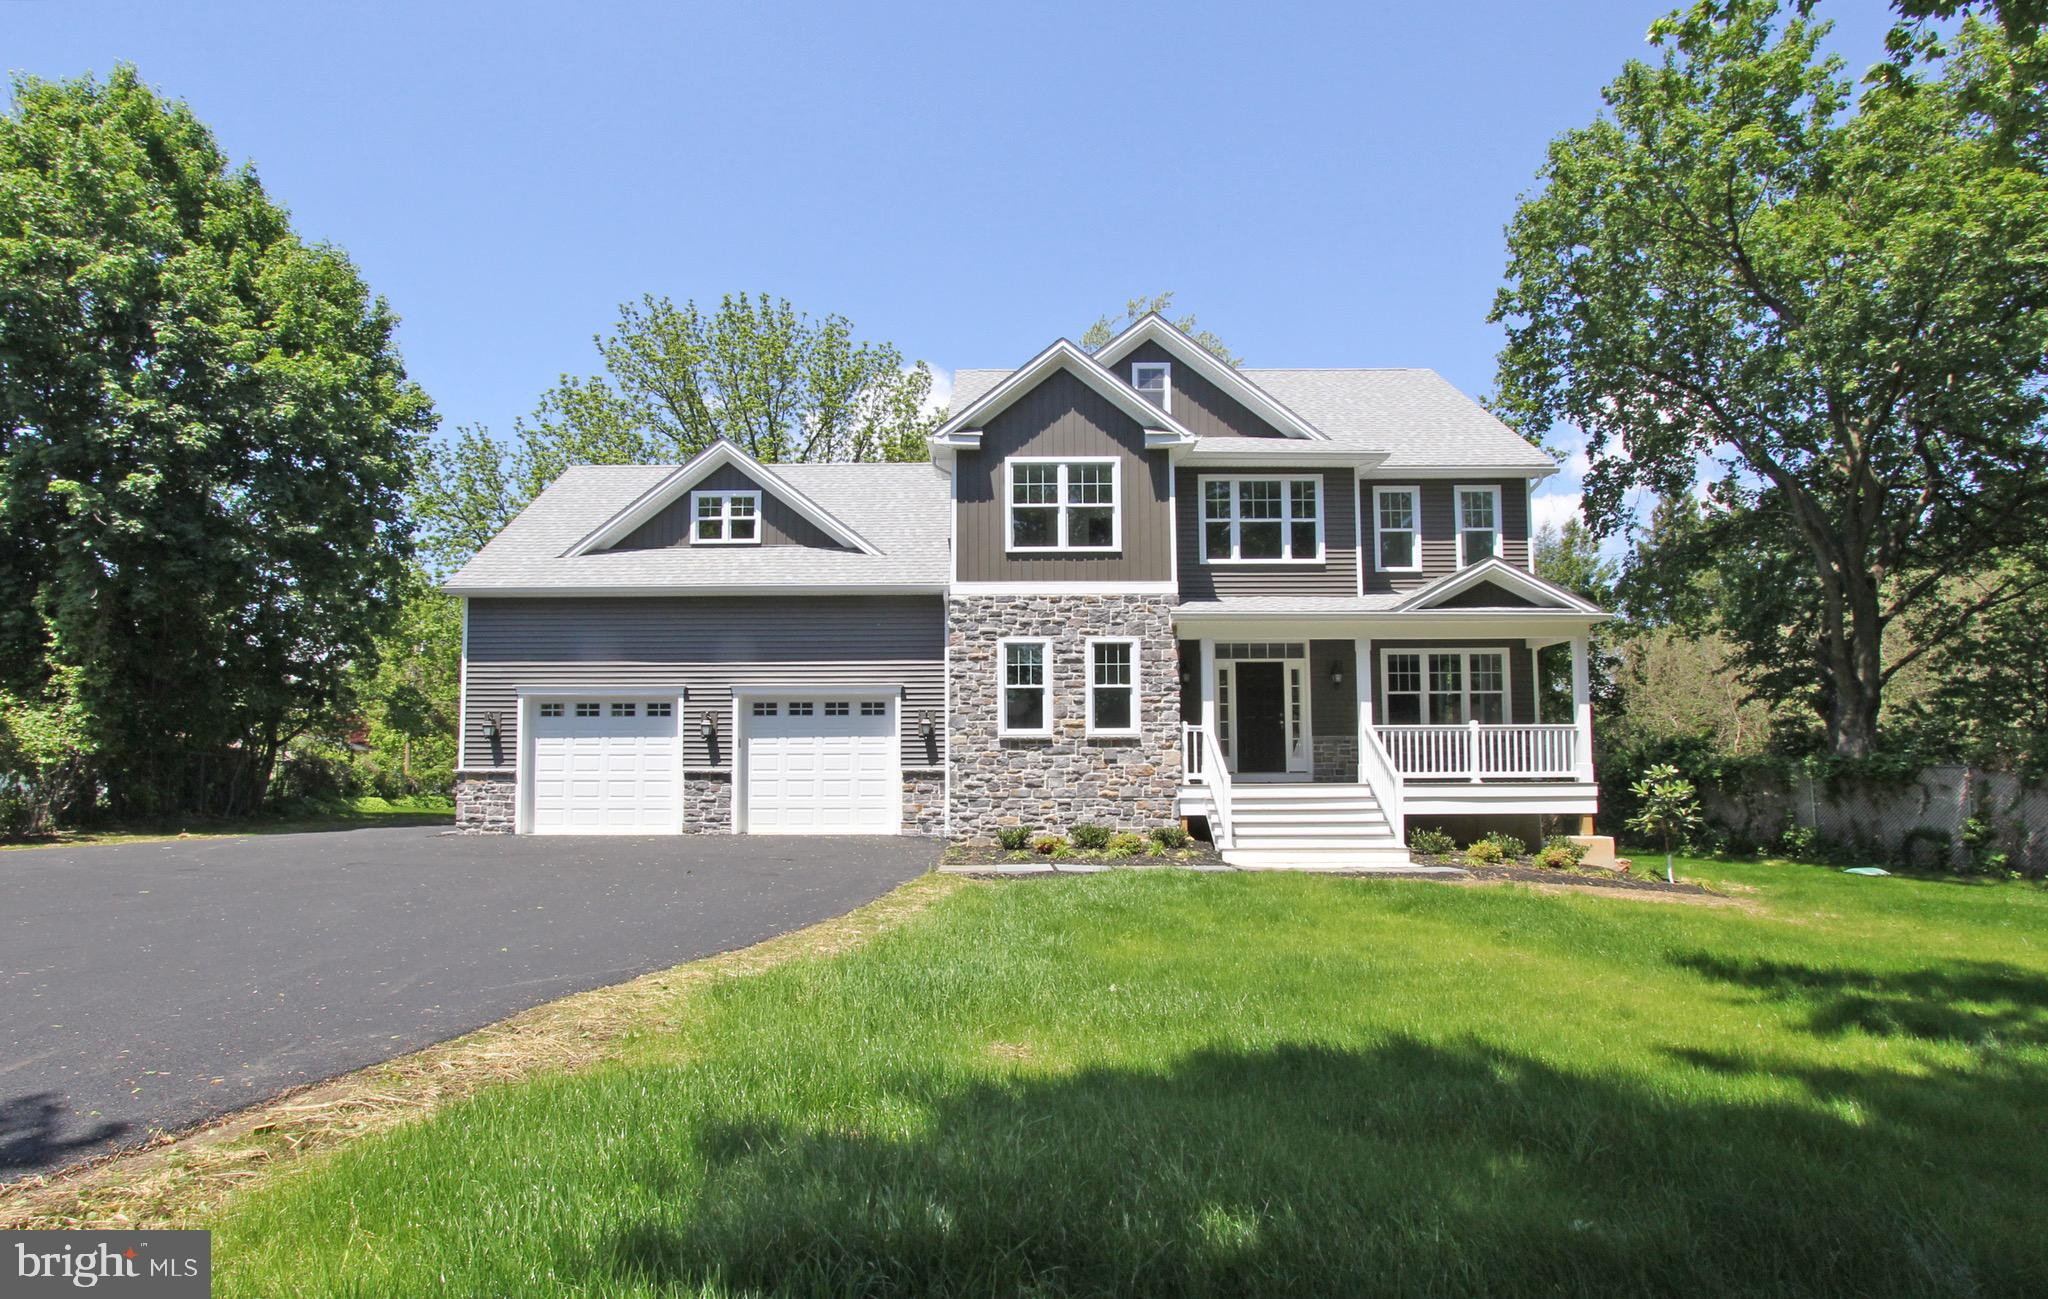 304 STATE ROAD, MEDIA, PA 19063